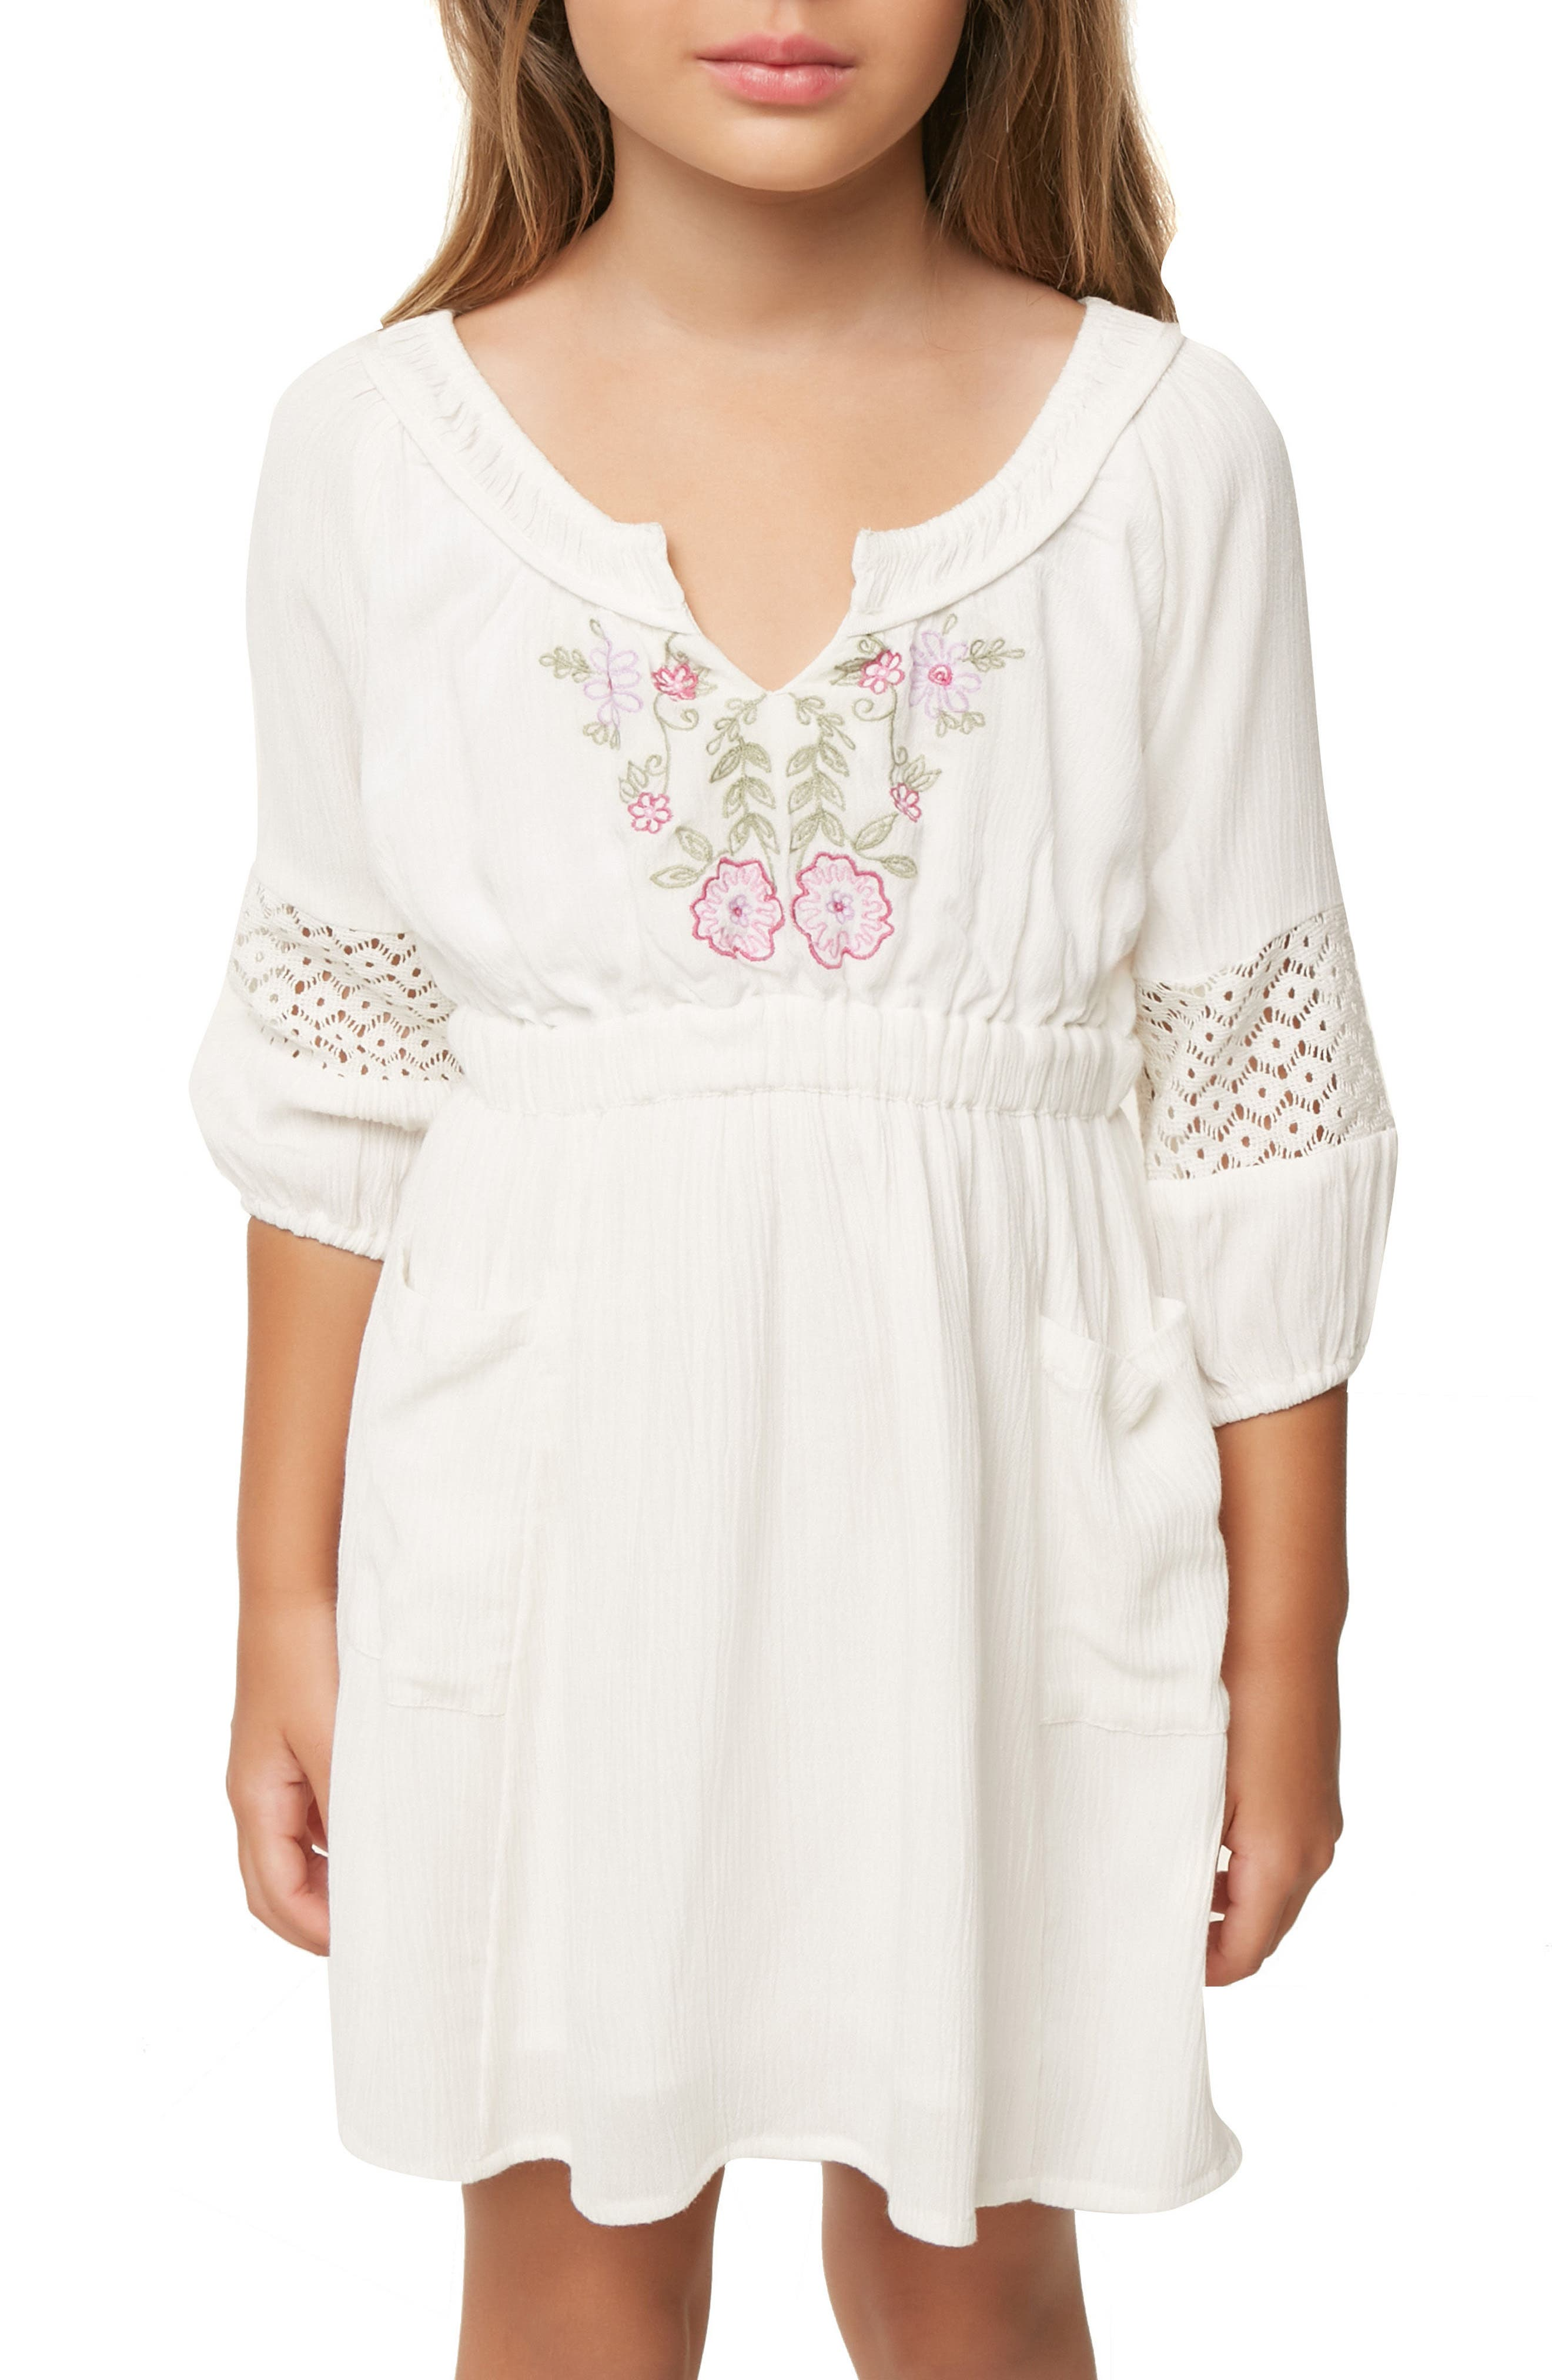 Malina Floral Embroidered Dress,                             Alternate thumbnail 5, color,                             White